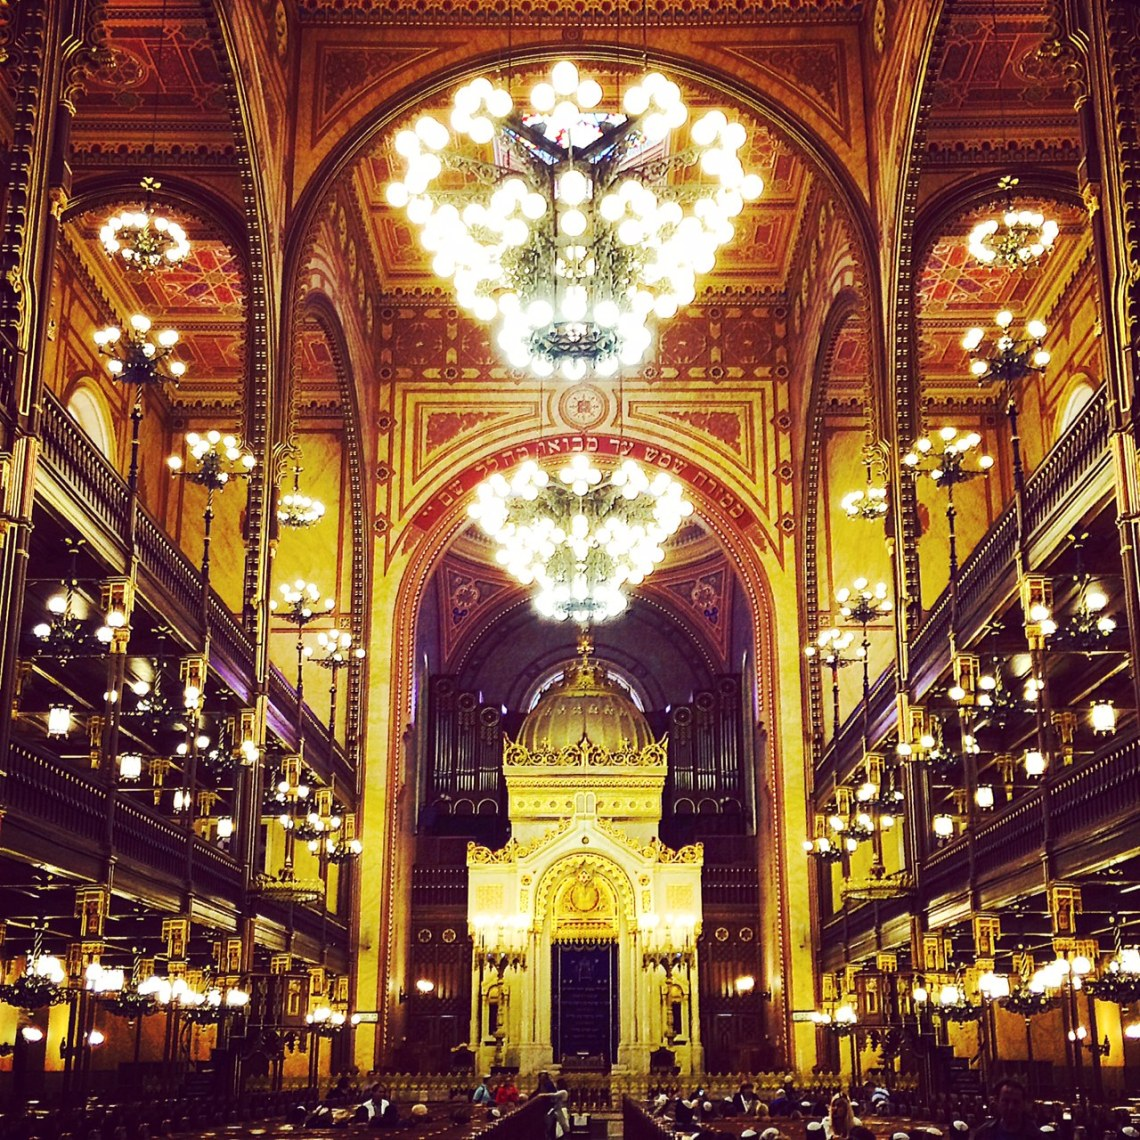 The Dohány Street Synagogue in Budapest. Photo by Kate Devine.